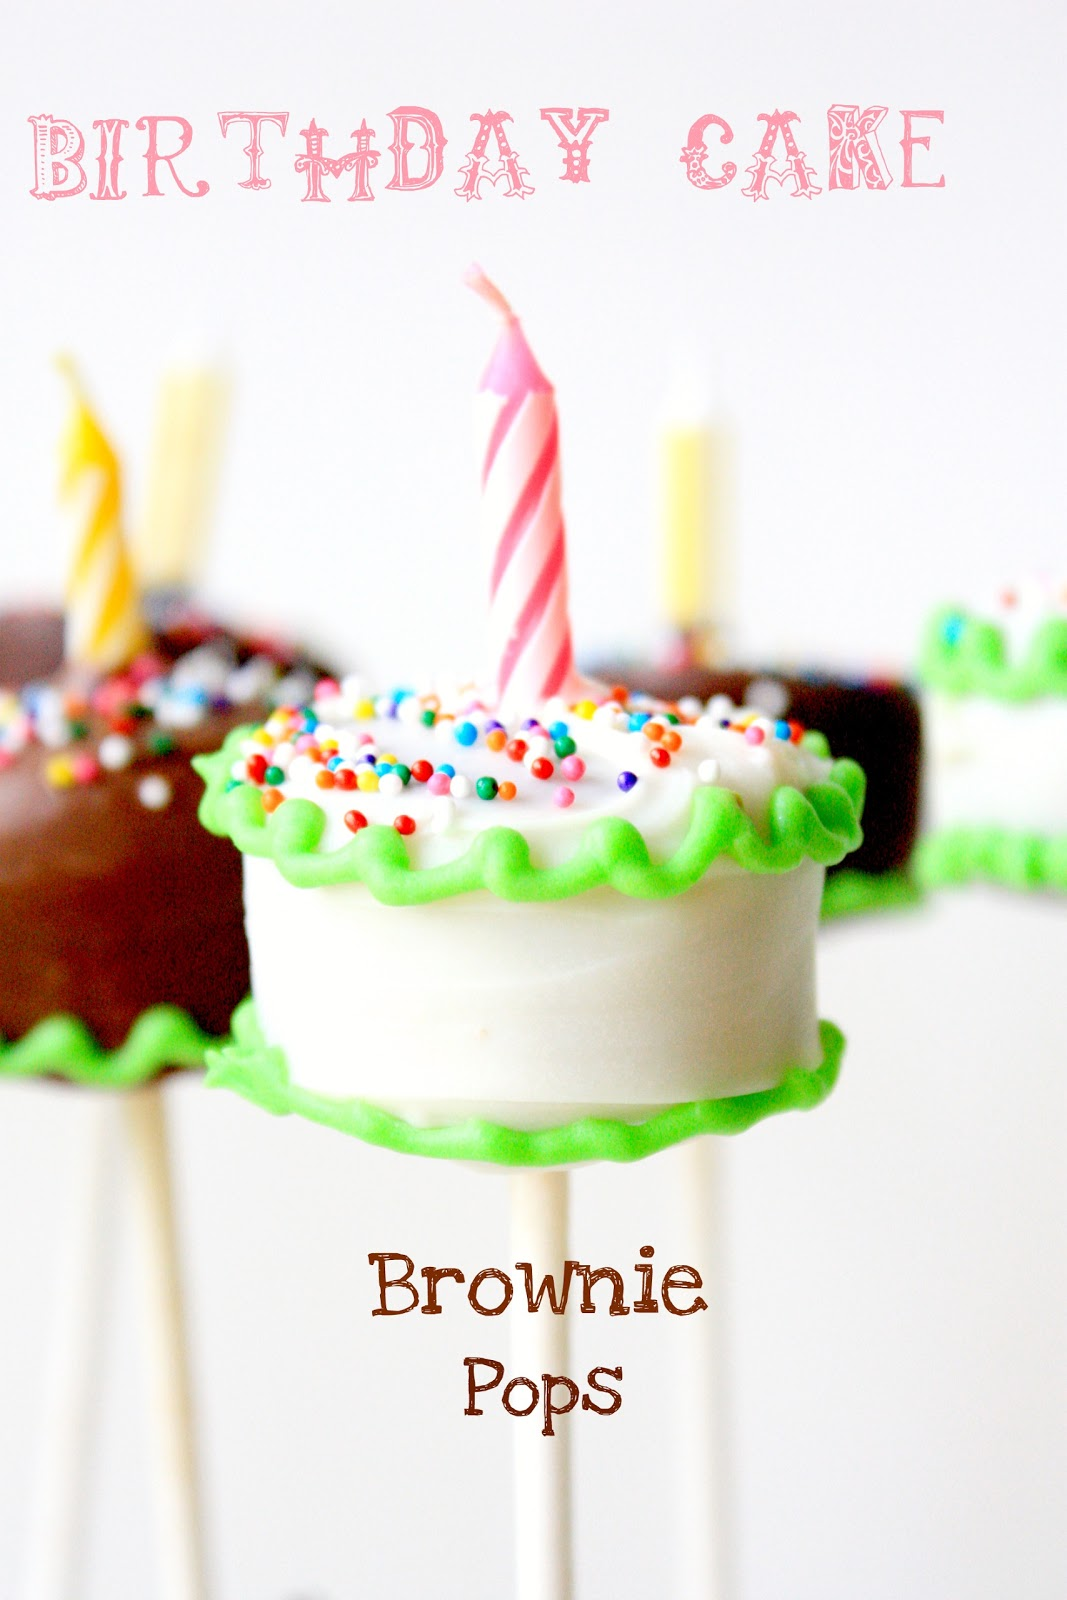 Recipes 'n Such: Birthday Cake Brownie Pops